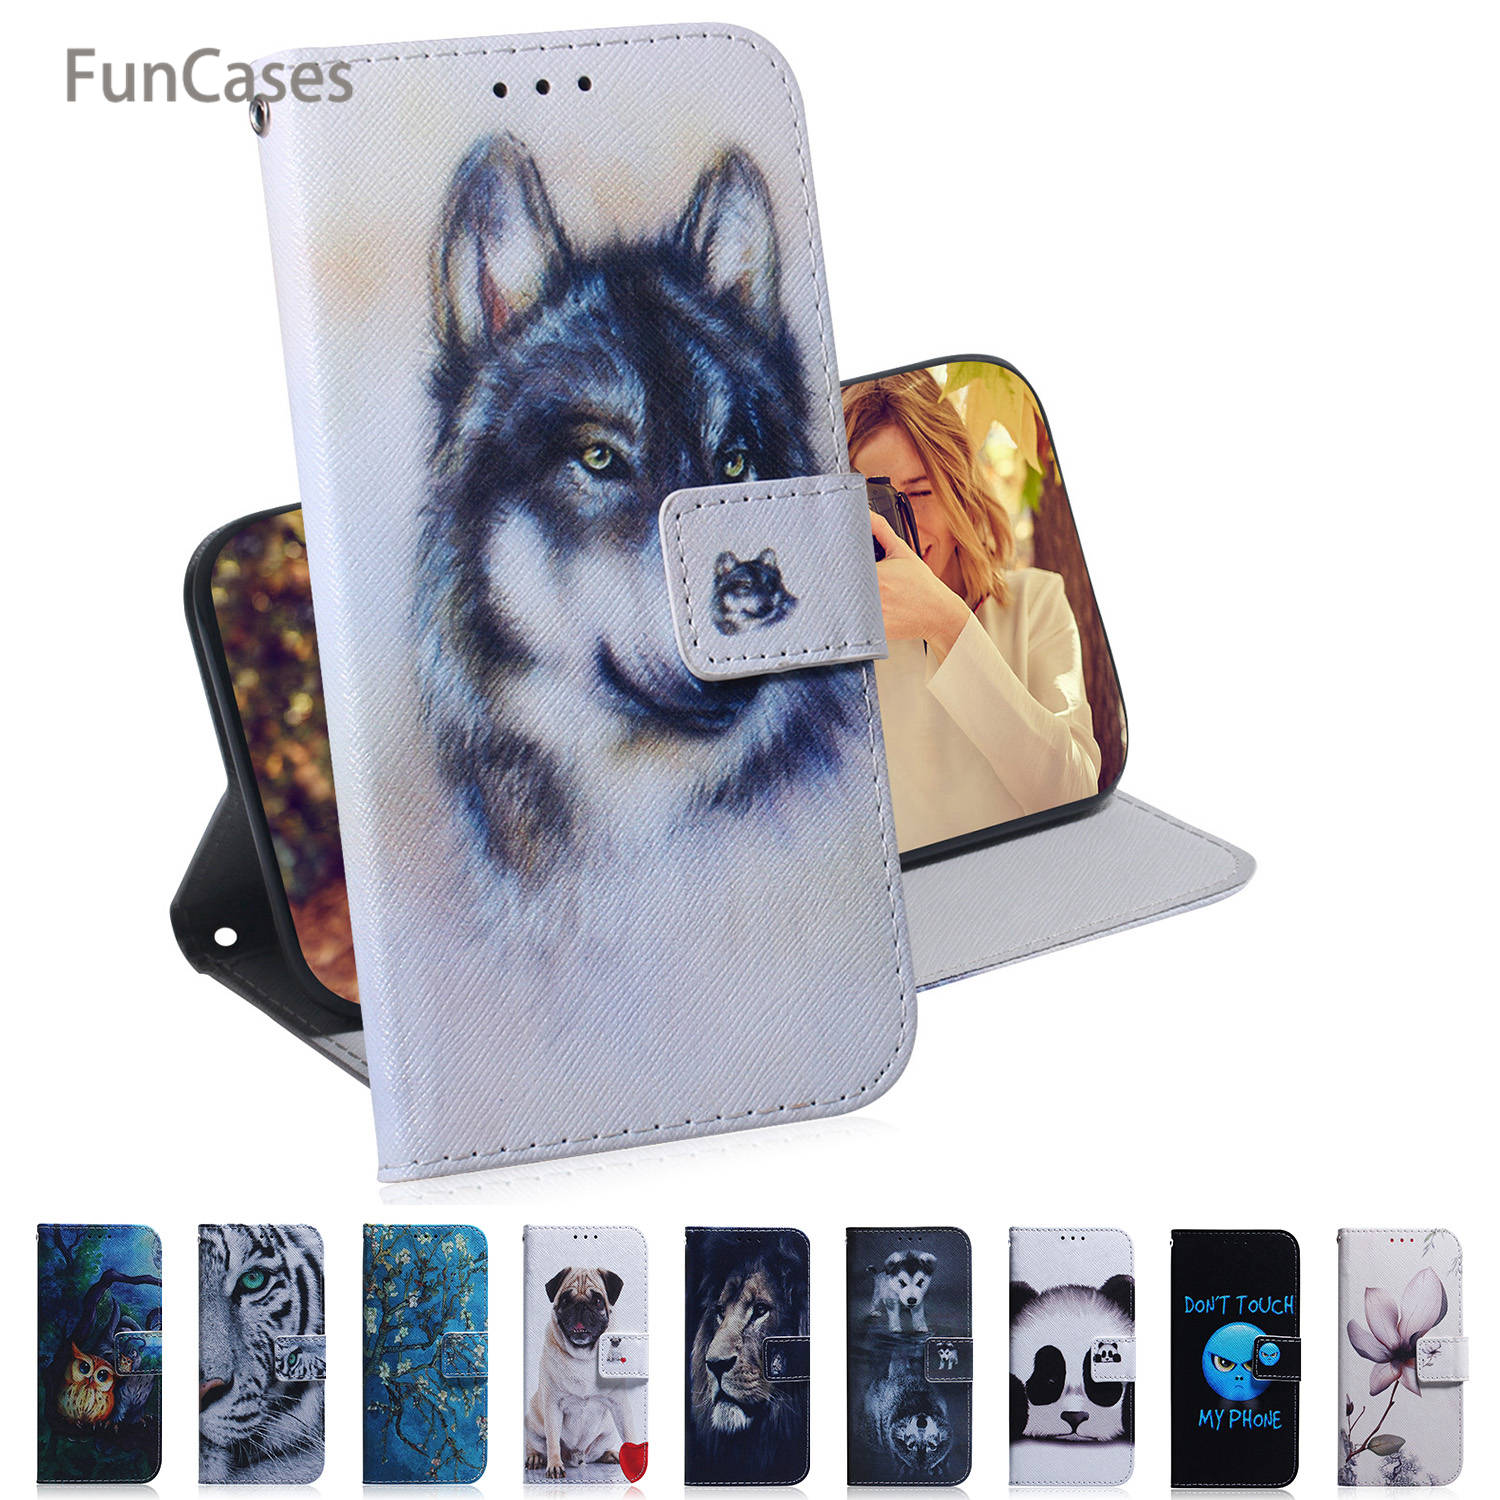 PU Leather Wallet Case For <font><b>Samsung</b></font> A50 Holsters Clips Cases sFor <font><b>Samsung</b></font> Galaxy A2 Core A20E A30 A40 A60 A750 <font><b>A70</b></font> A80 A9 2018 image